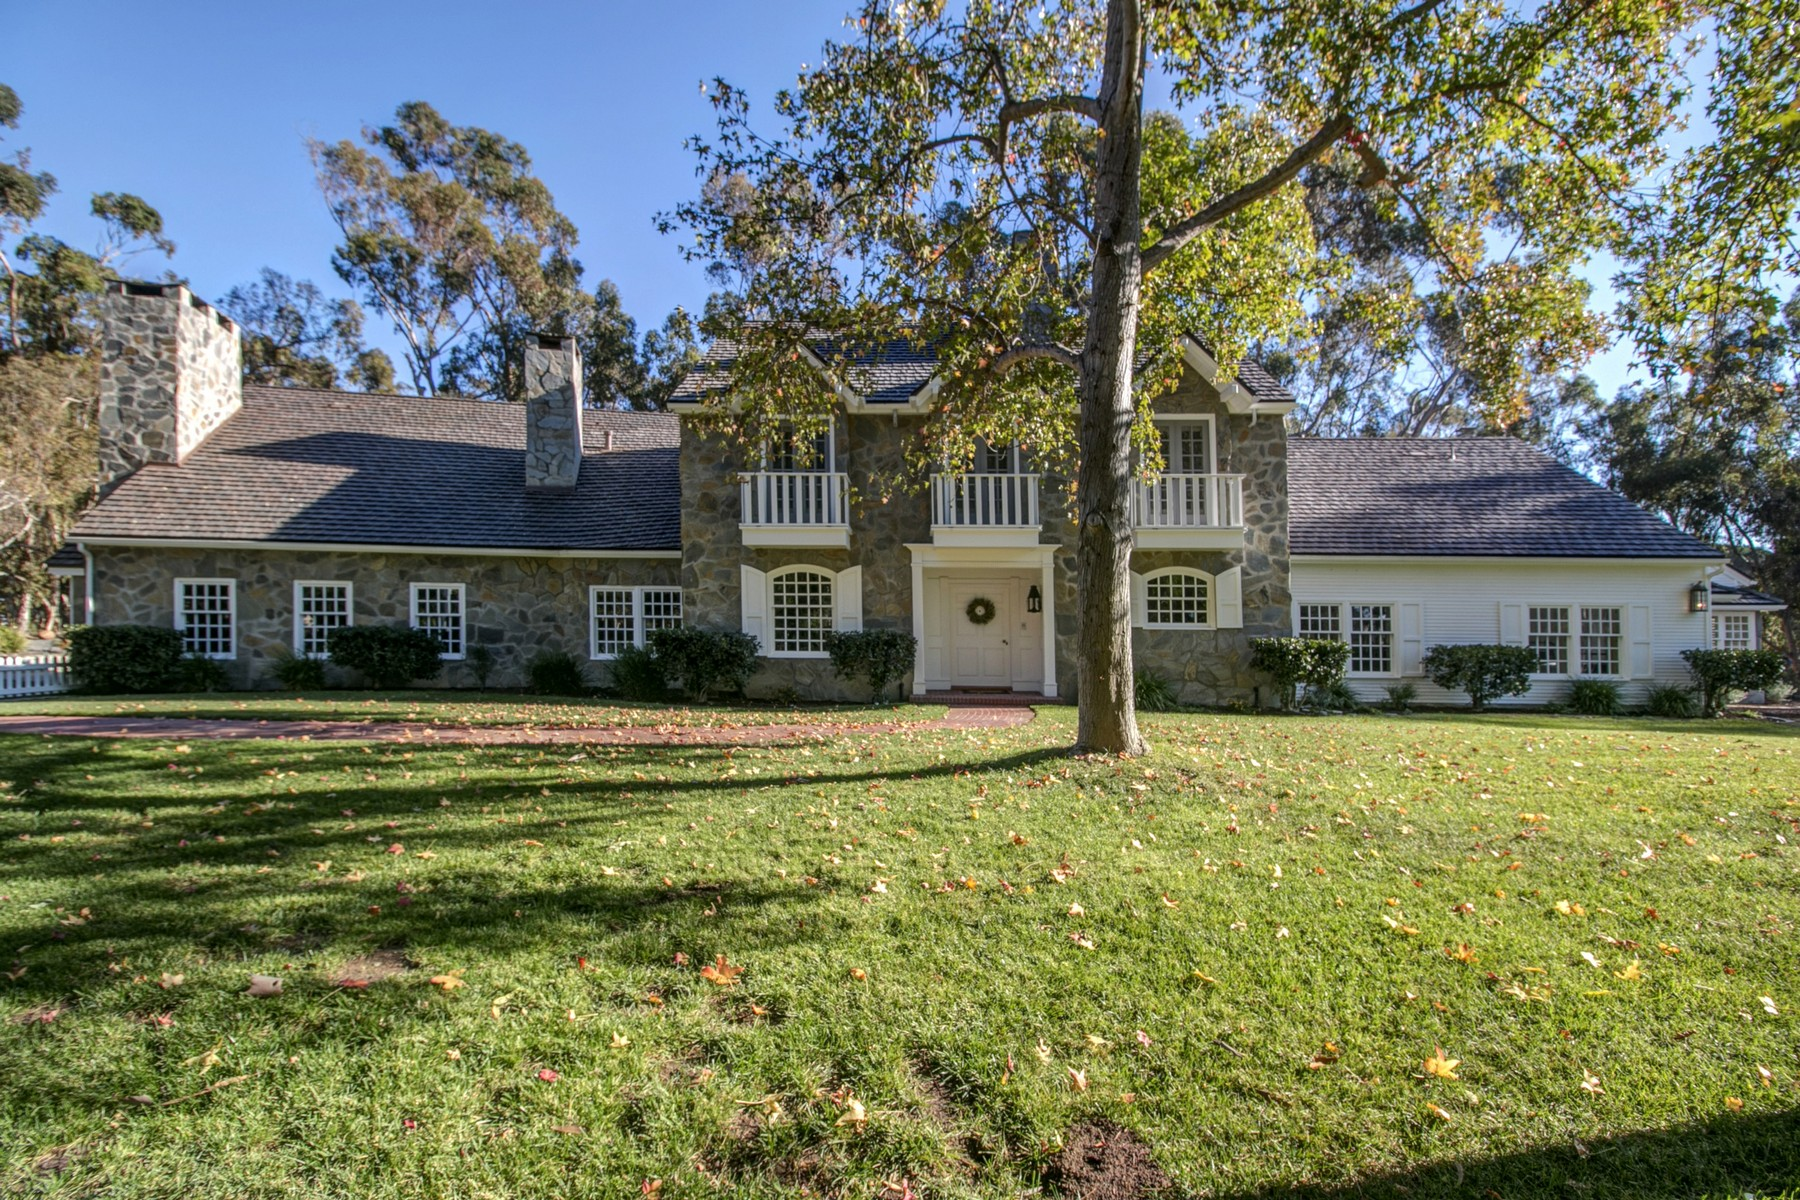 Single Family Home for Sale at 15152 Las Planideras Rancho Santa Fe, California, 92067 United States